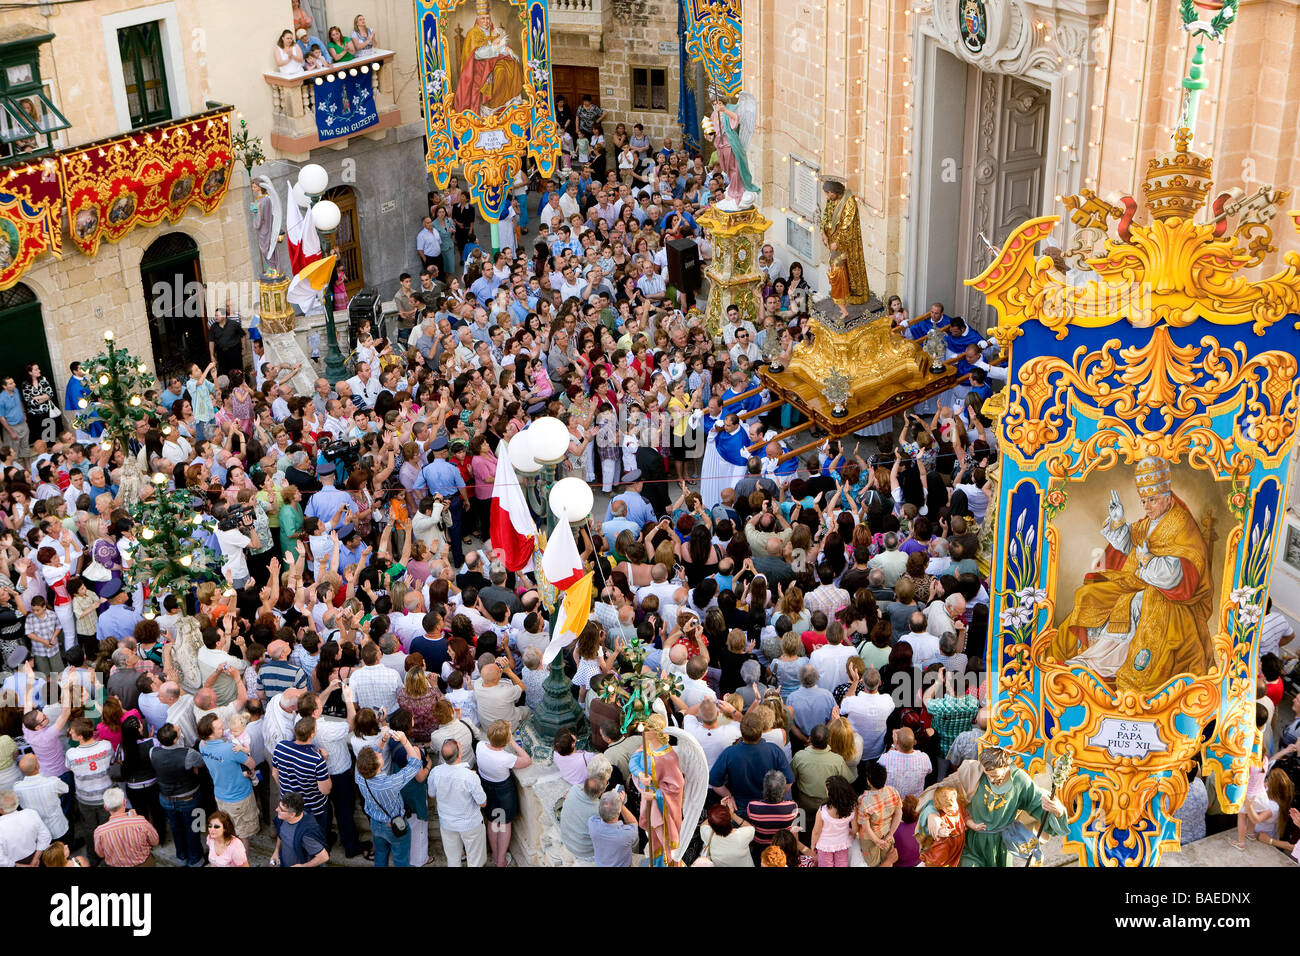 Malta, the Center, Ghaxaq, the annual festa of the villageStock Photo